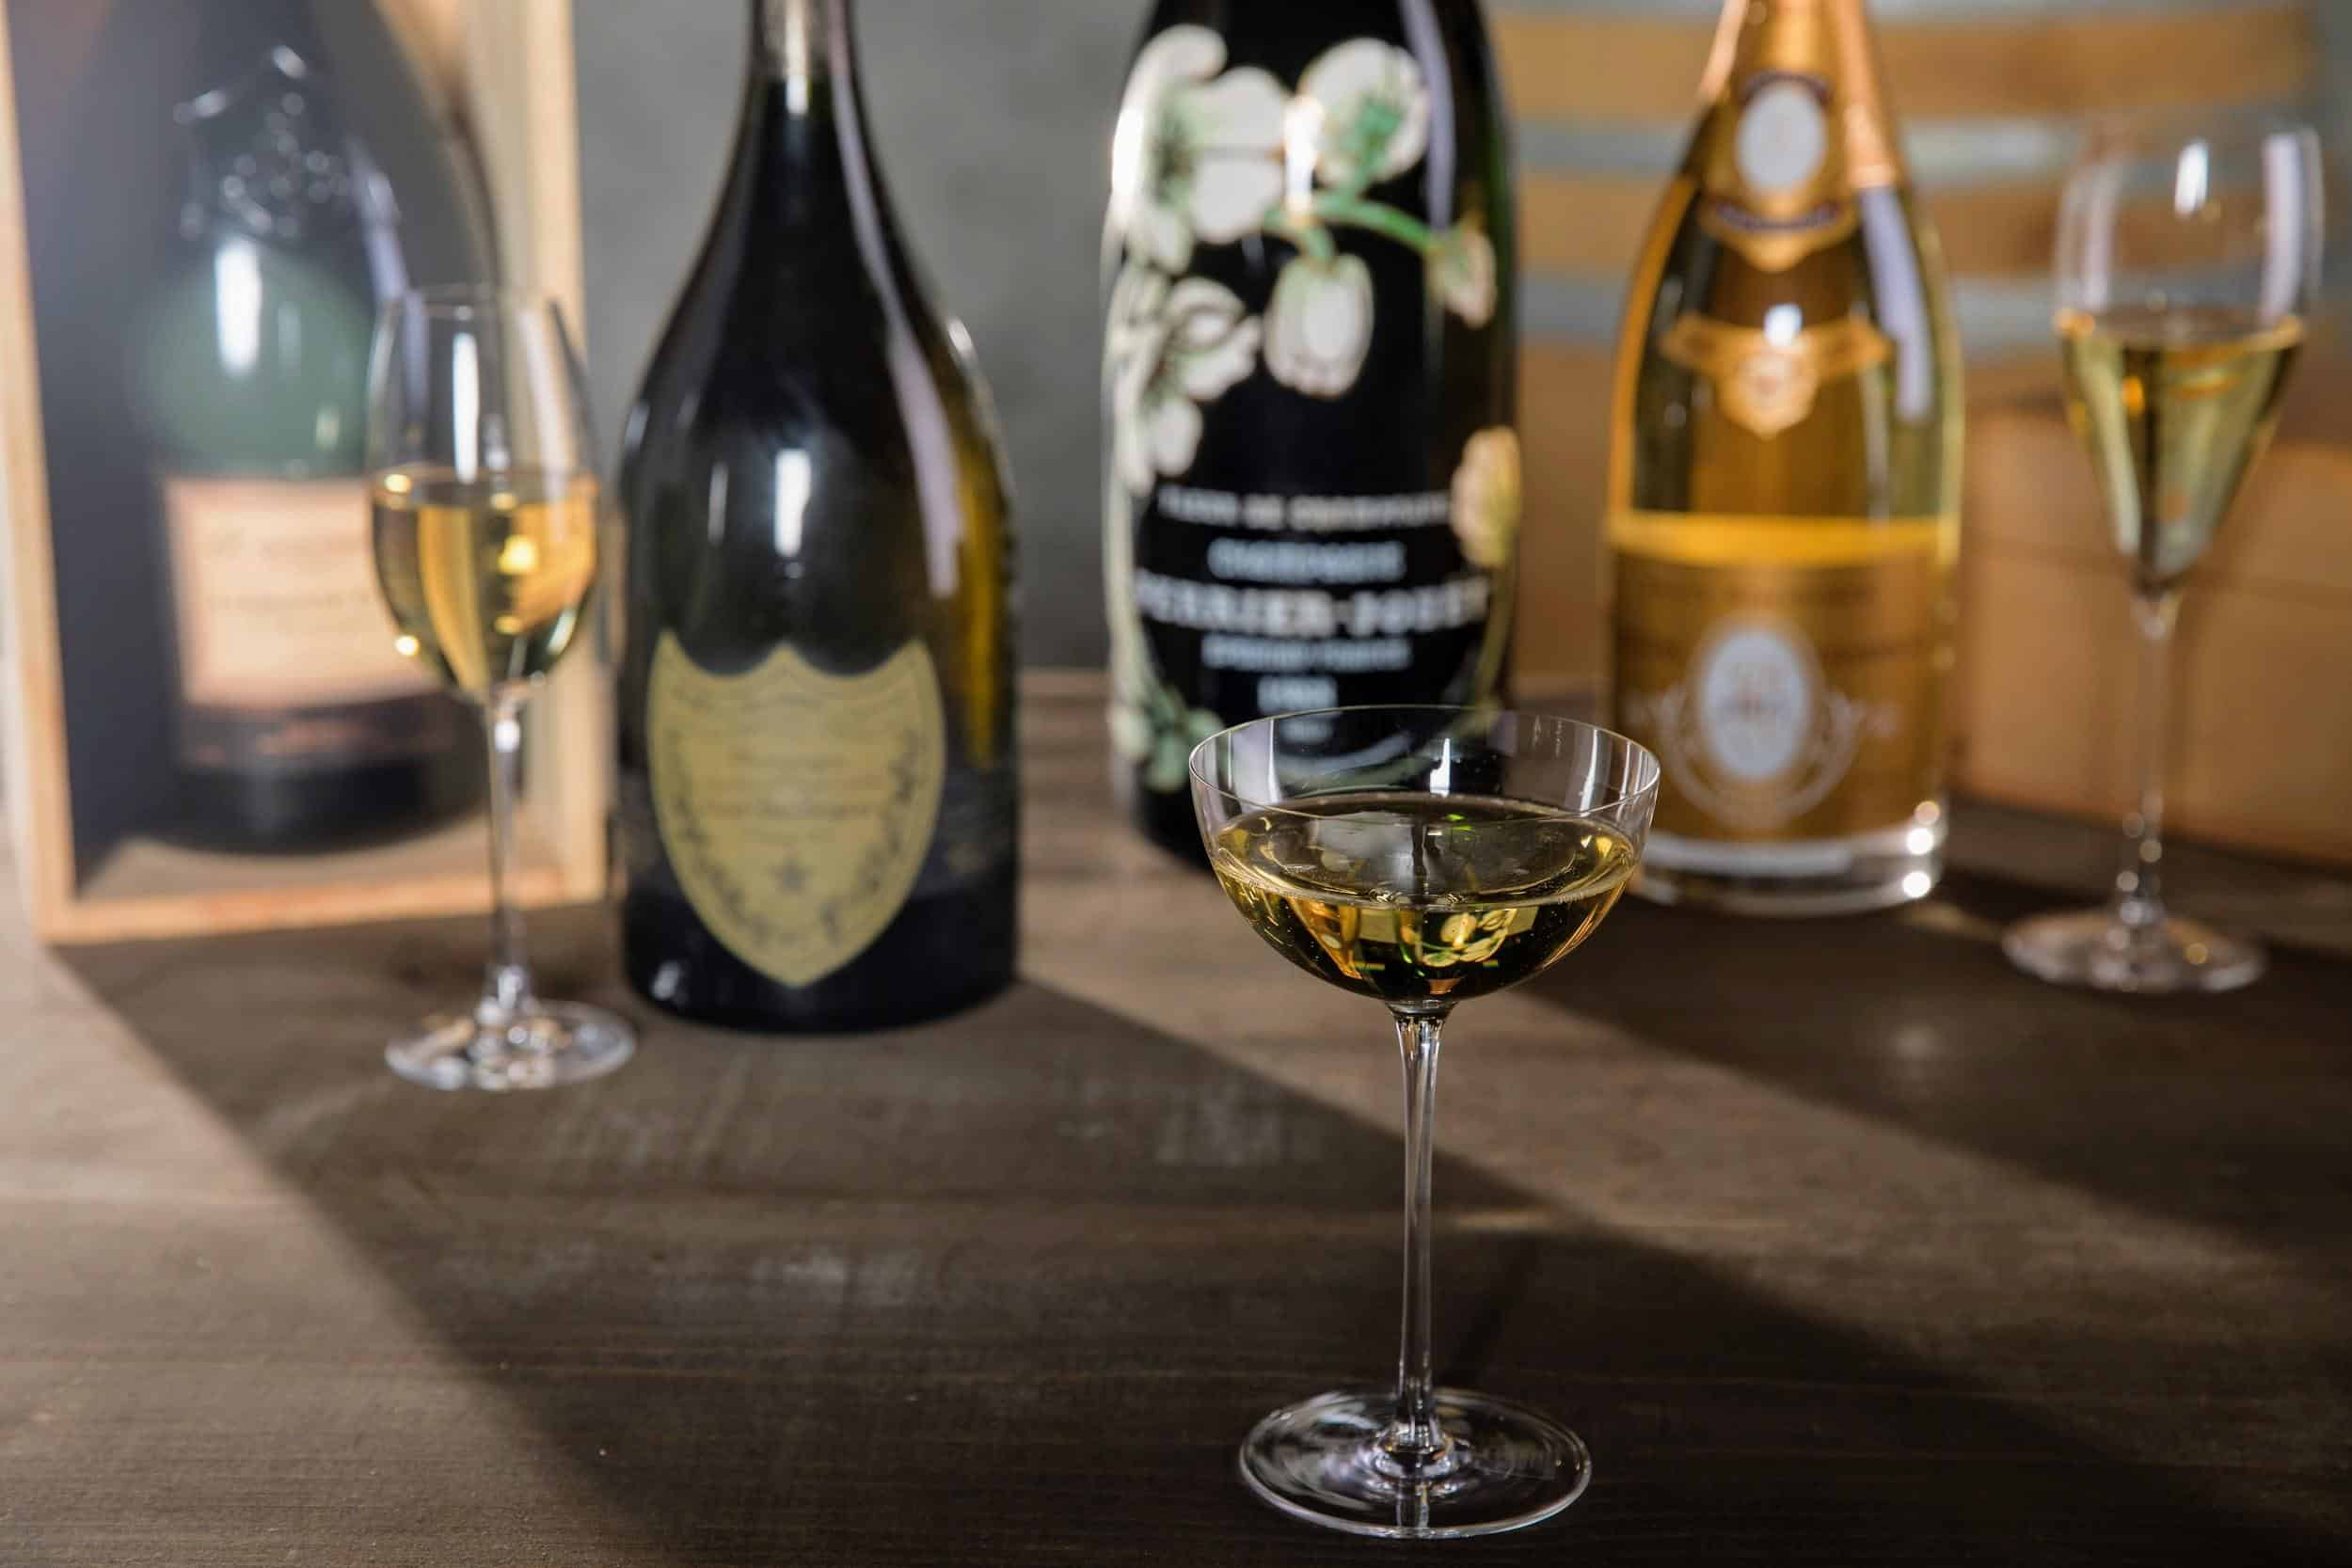 The best Champagne under $200 is affordable and delicious.